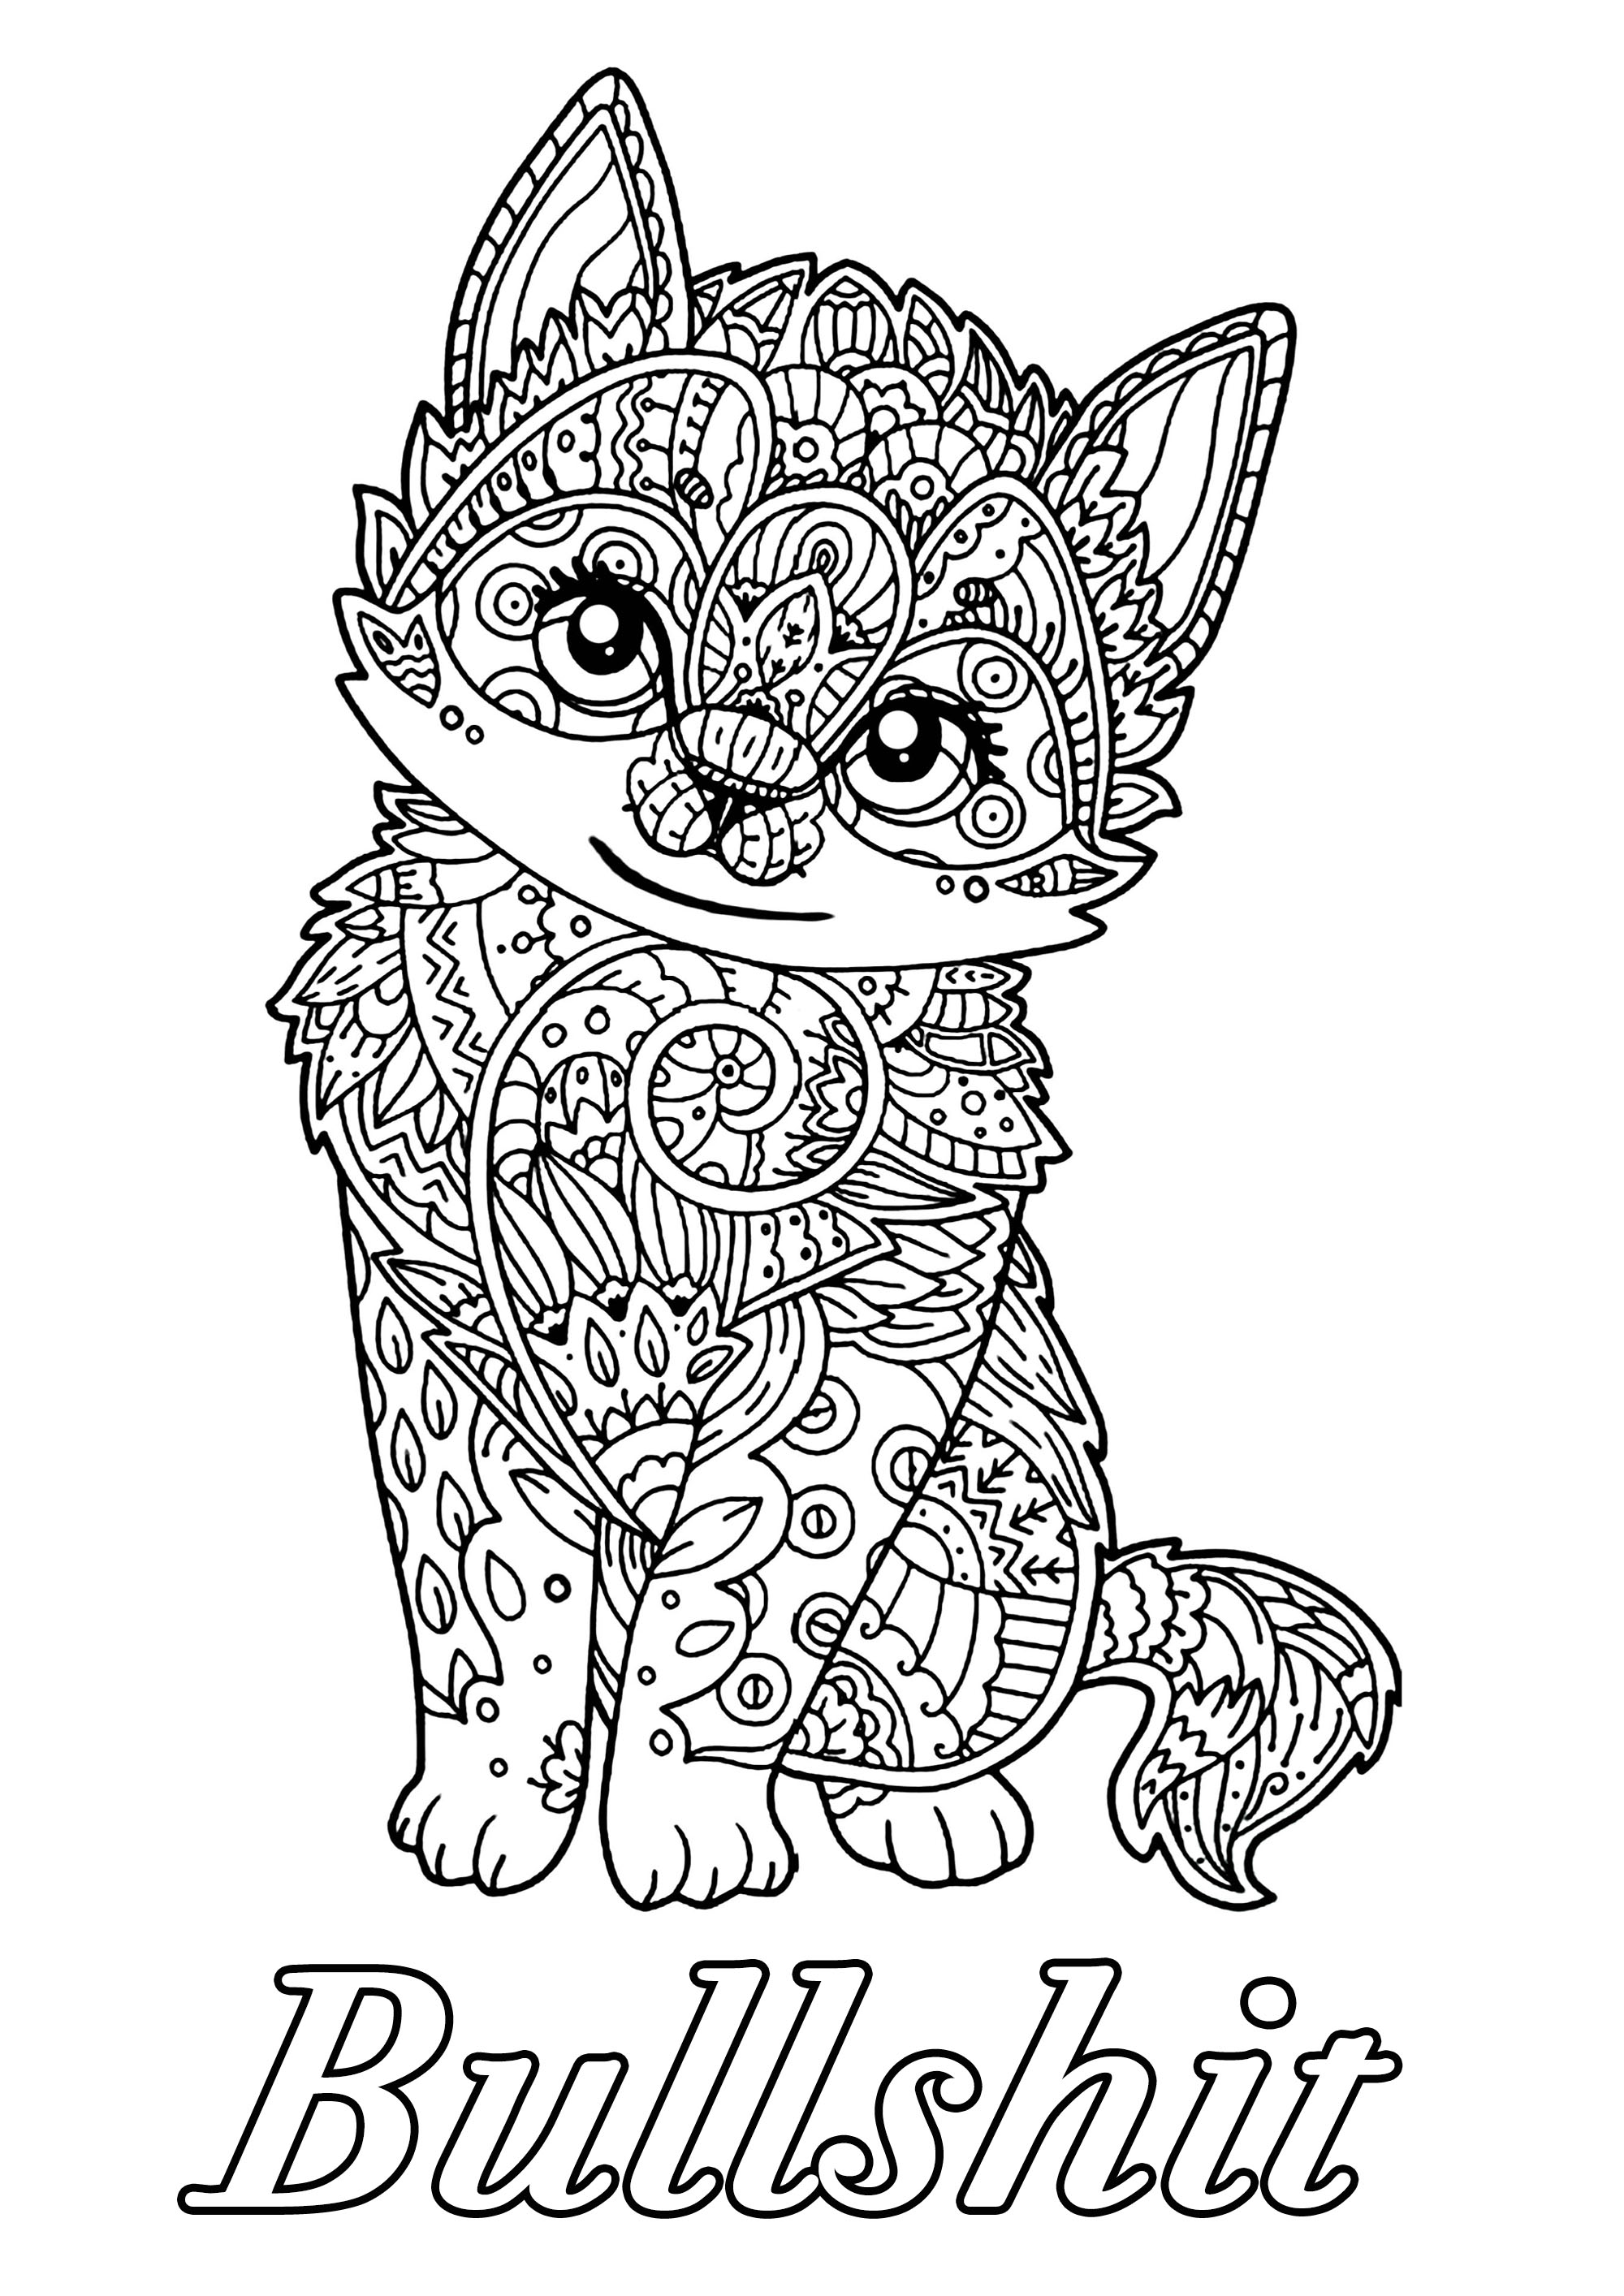 Bullshit : Swear word coloring page with cute kitten